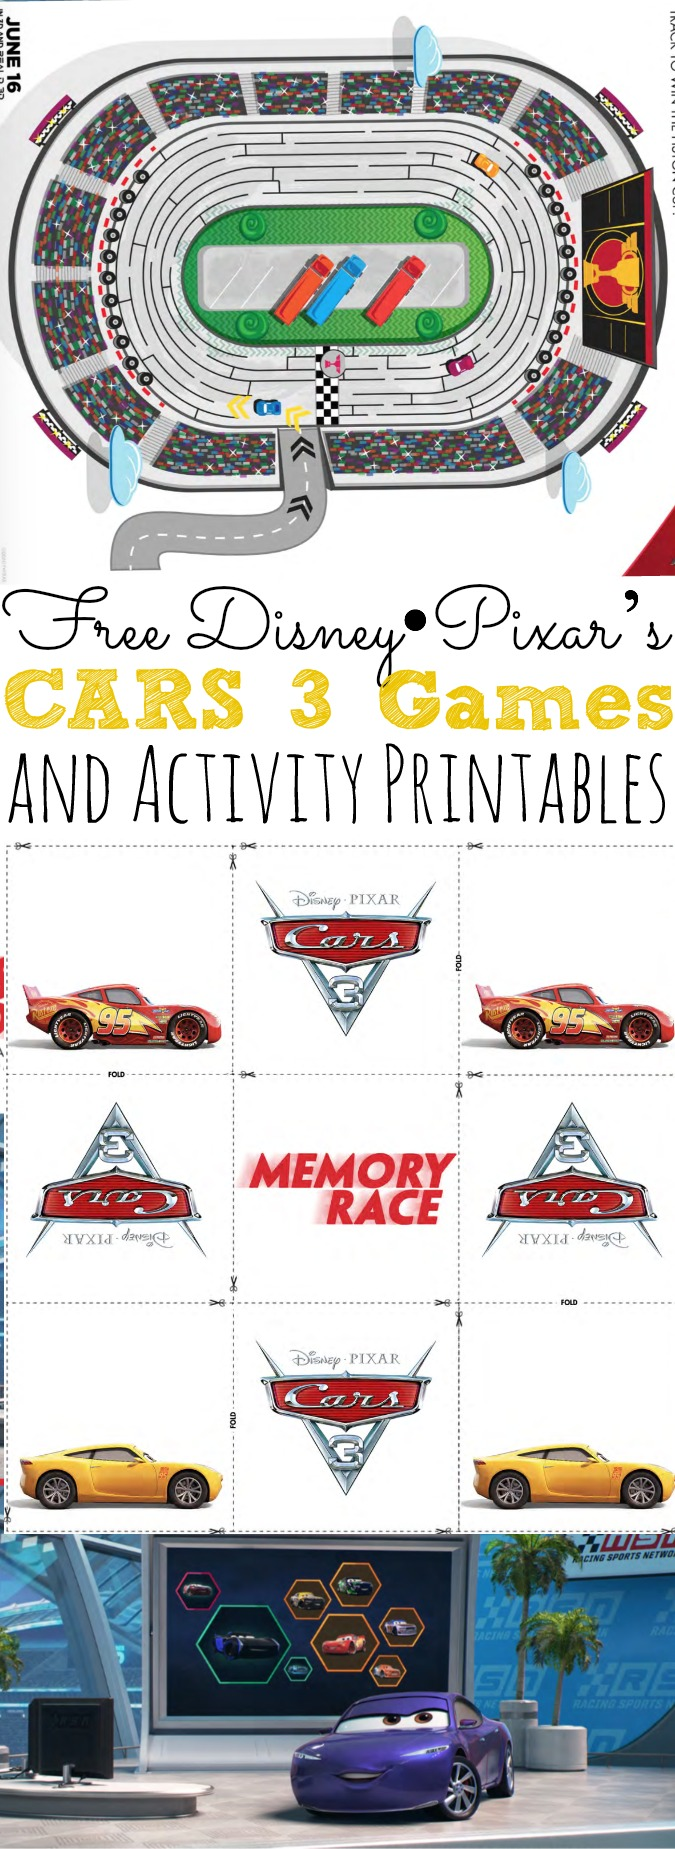 Free Disney Pixar S Cars 3 Games And Activity Printables Simply